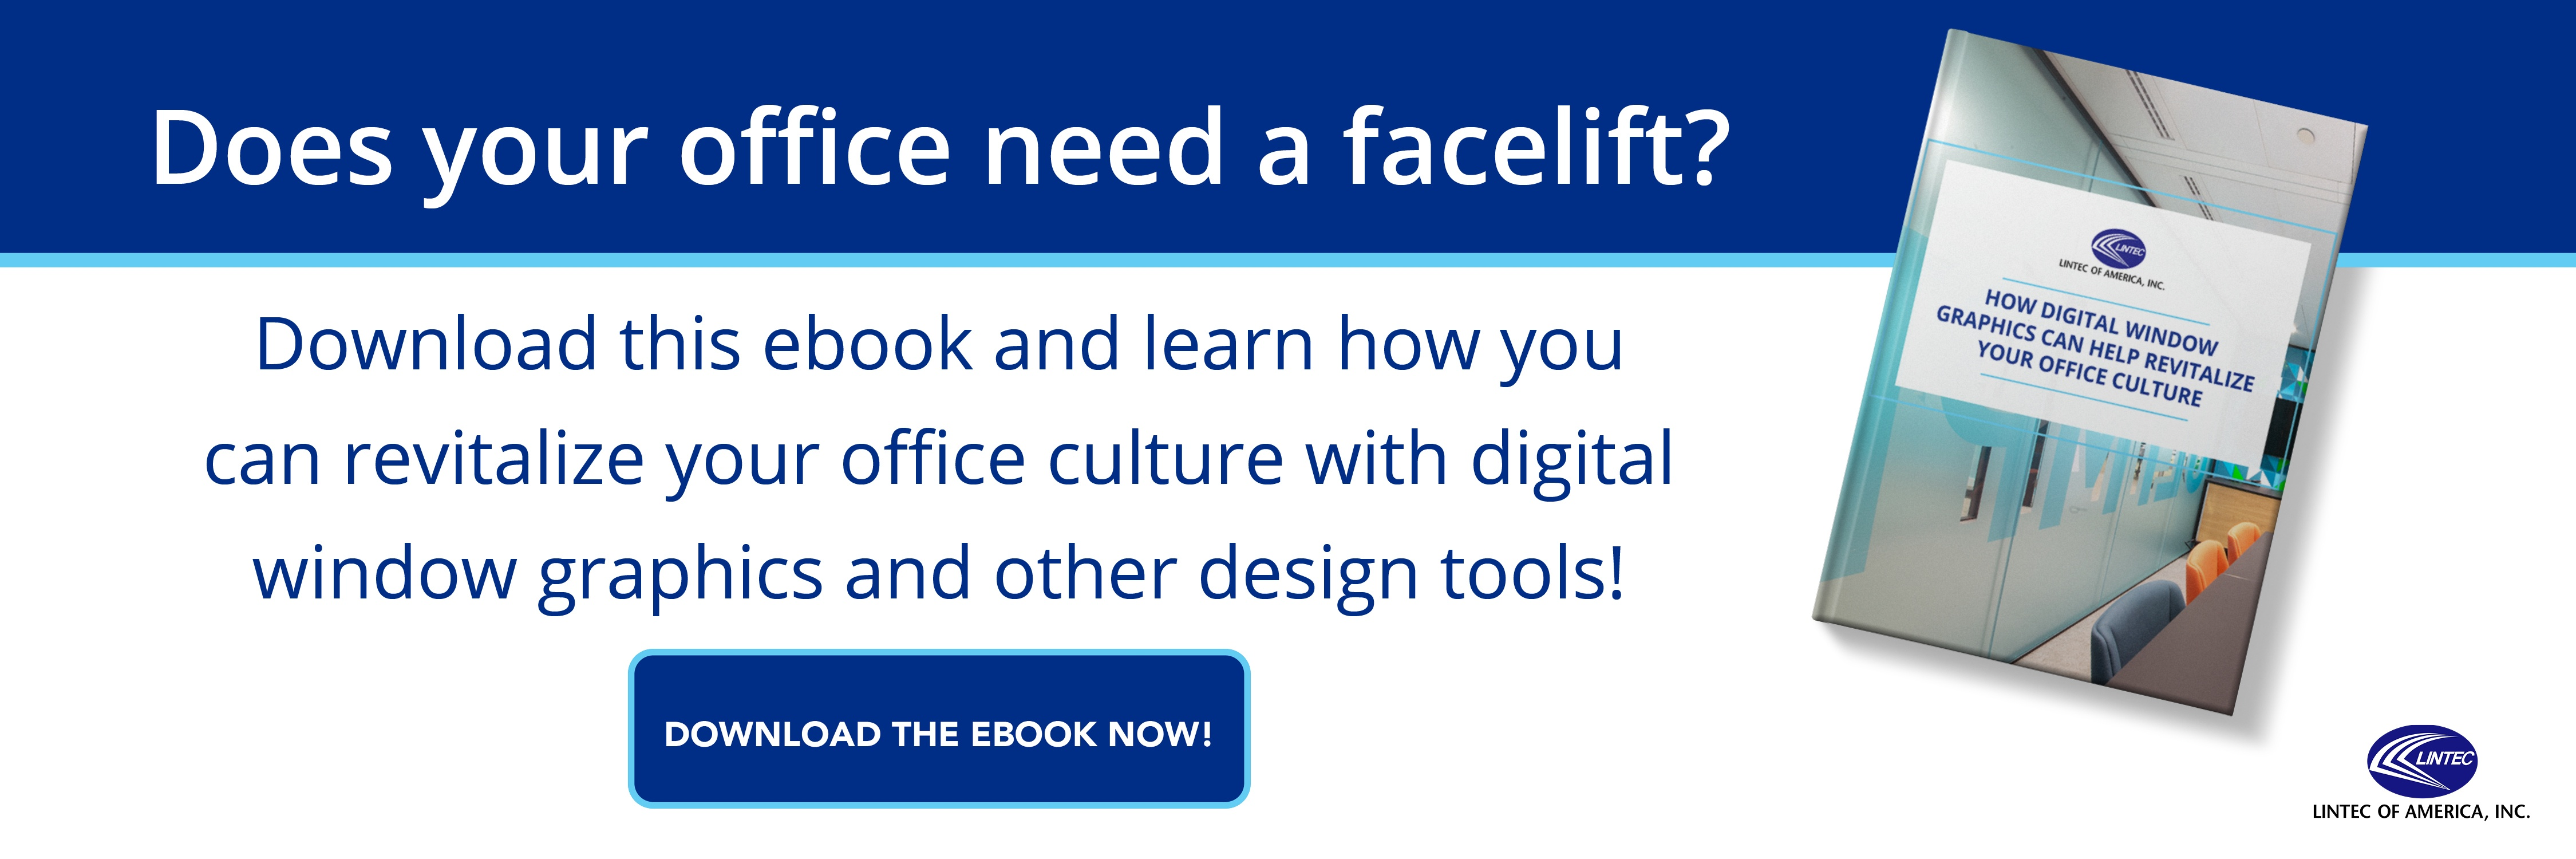 How Digital Window Graphics Can Help Revitalize Your Office Culture